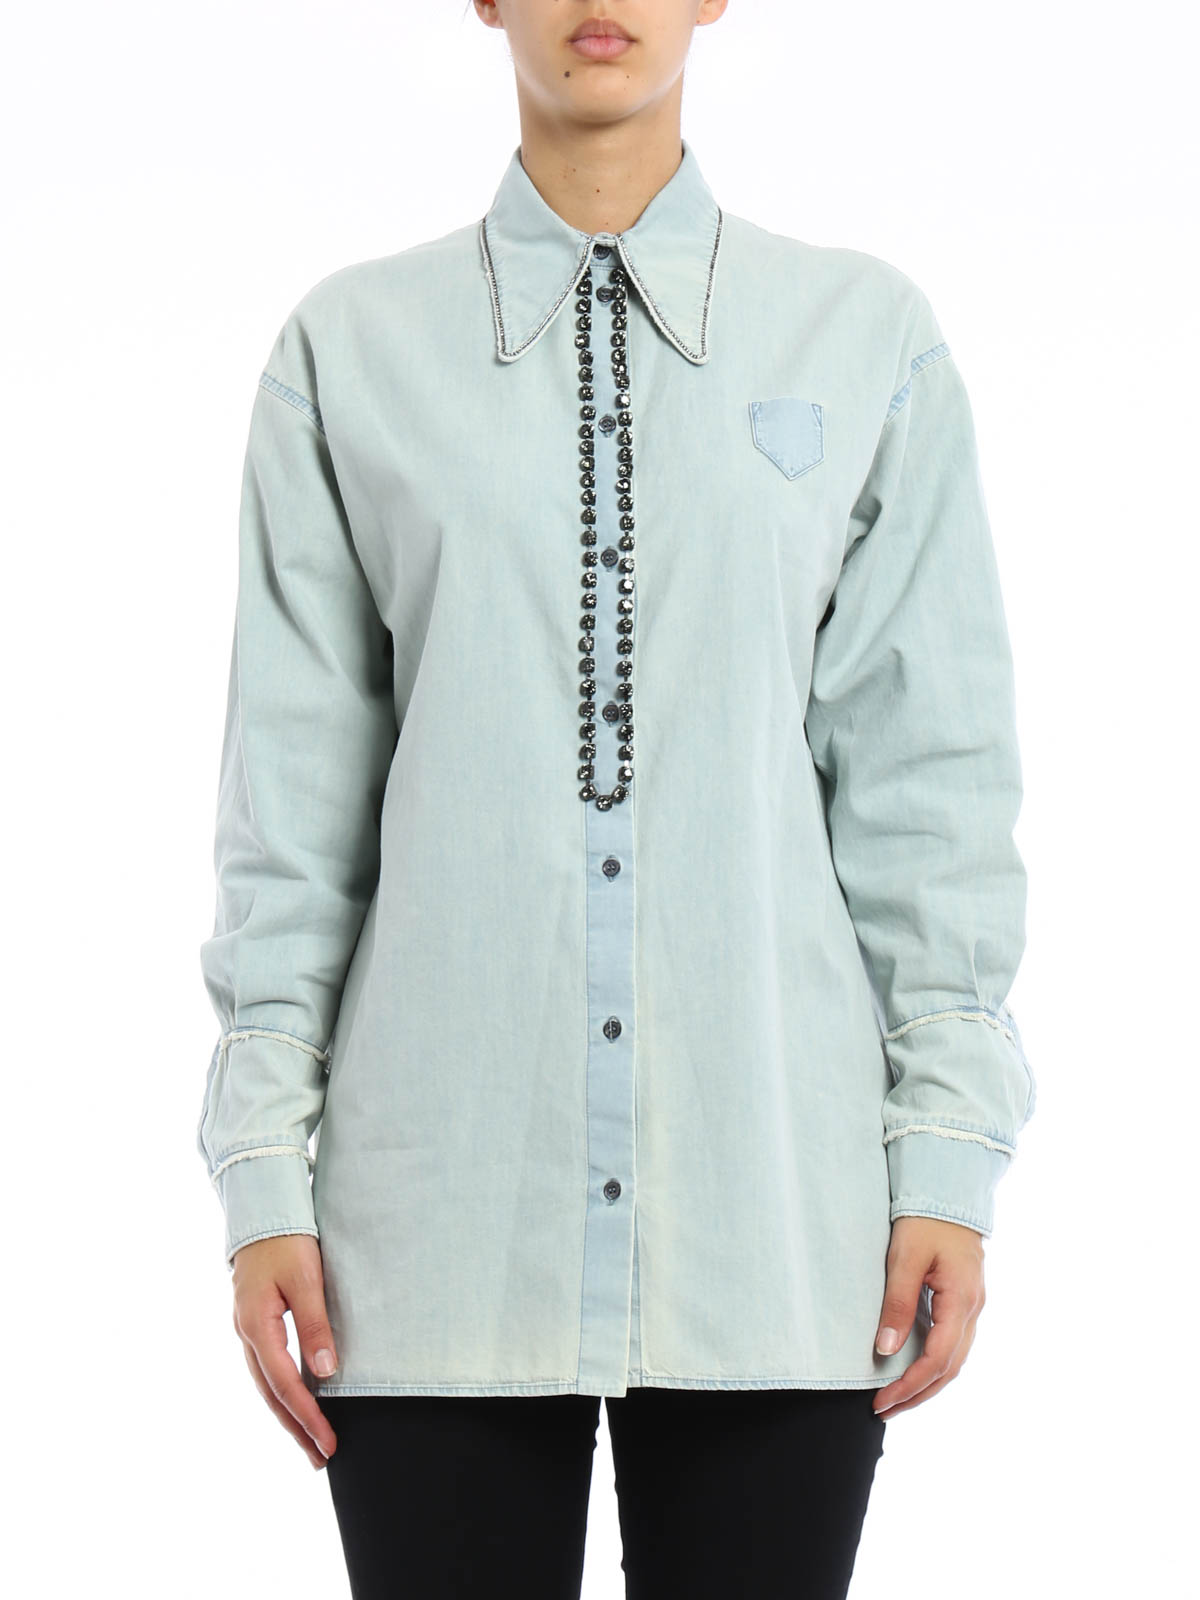 DENIM - Denim shirts N°21 Best Prices Cheap Price Sale Latest Sneakernews Online With Credit Card Discount Outlet Store tJ3eIyZ